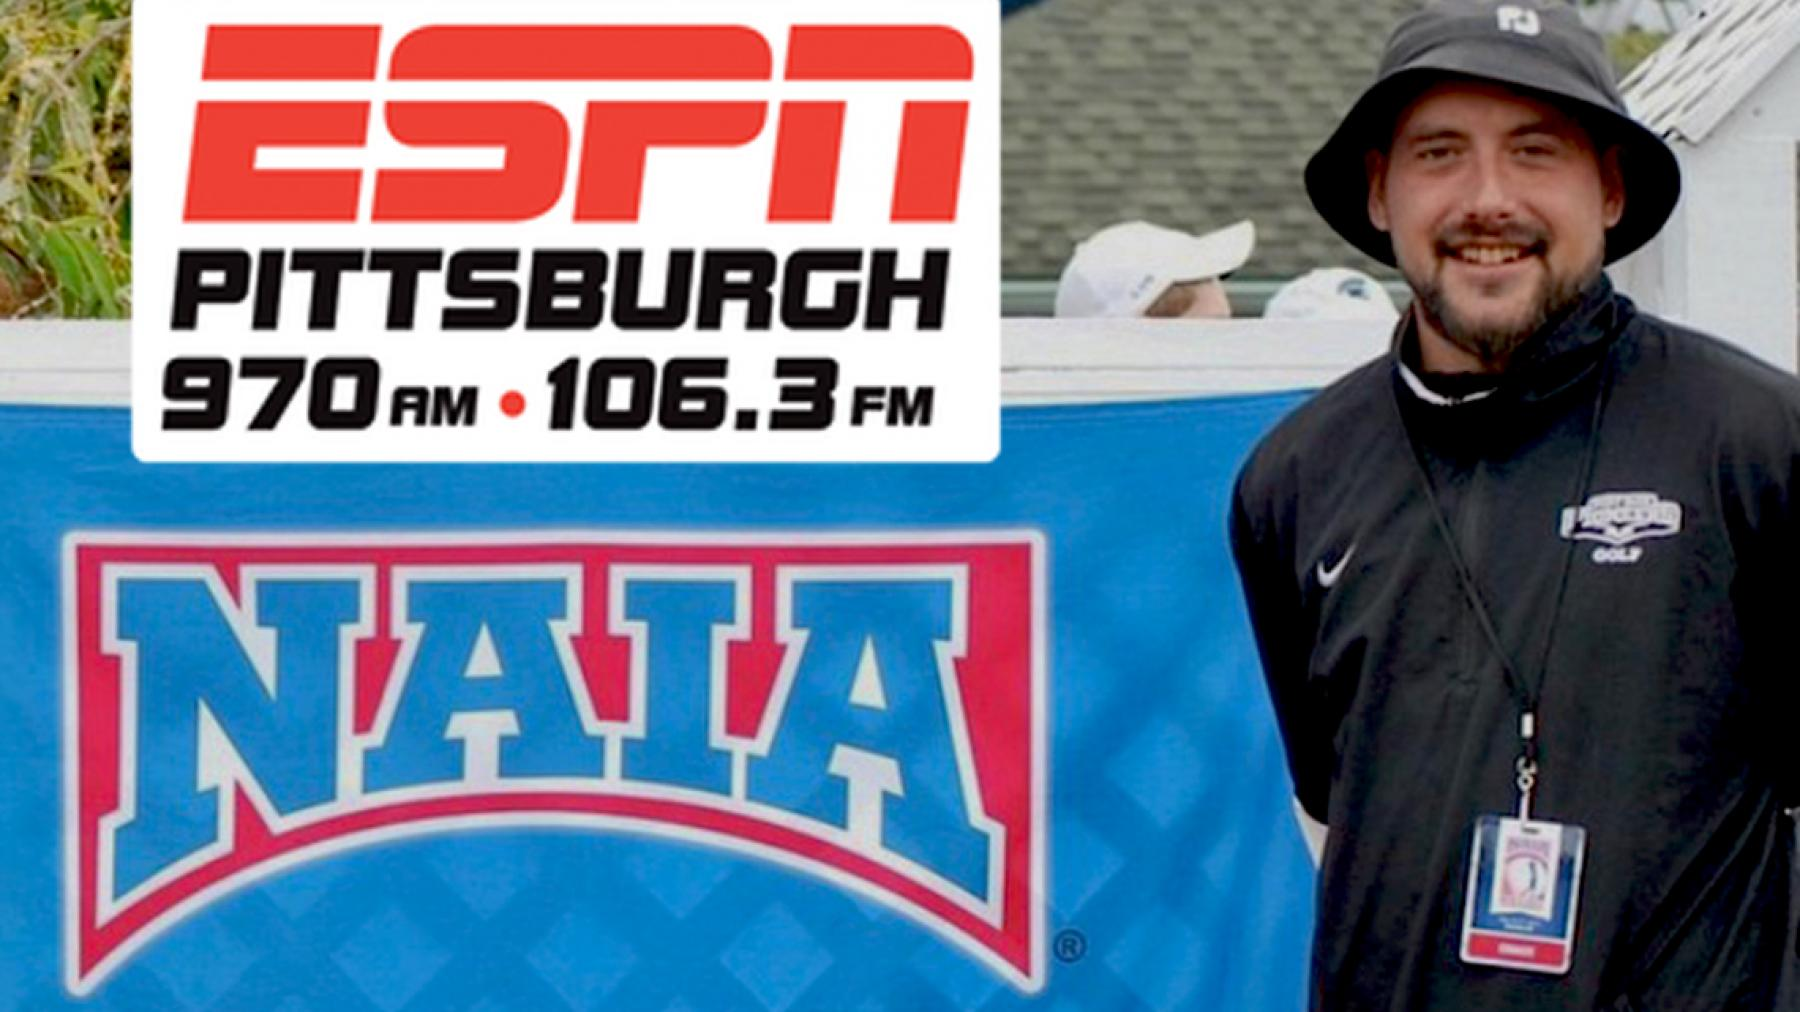 #PPUGOLF coach Gabe Bubon to appear on ESPN Radio Pittsburgh Thursday @ 7:45 pm